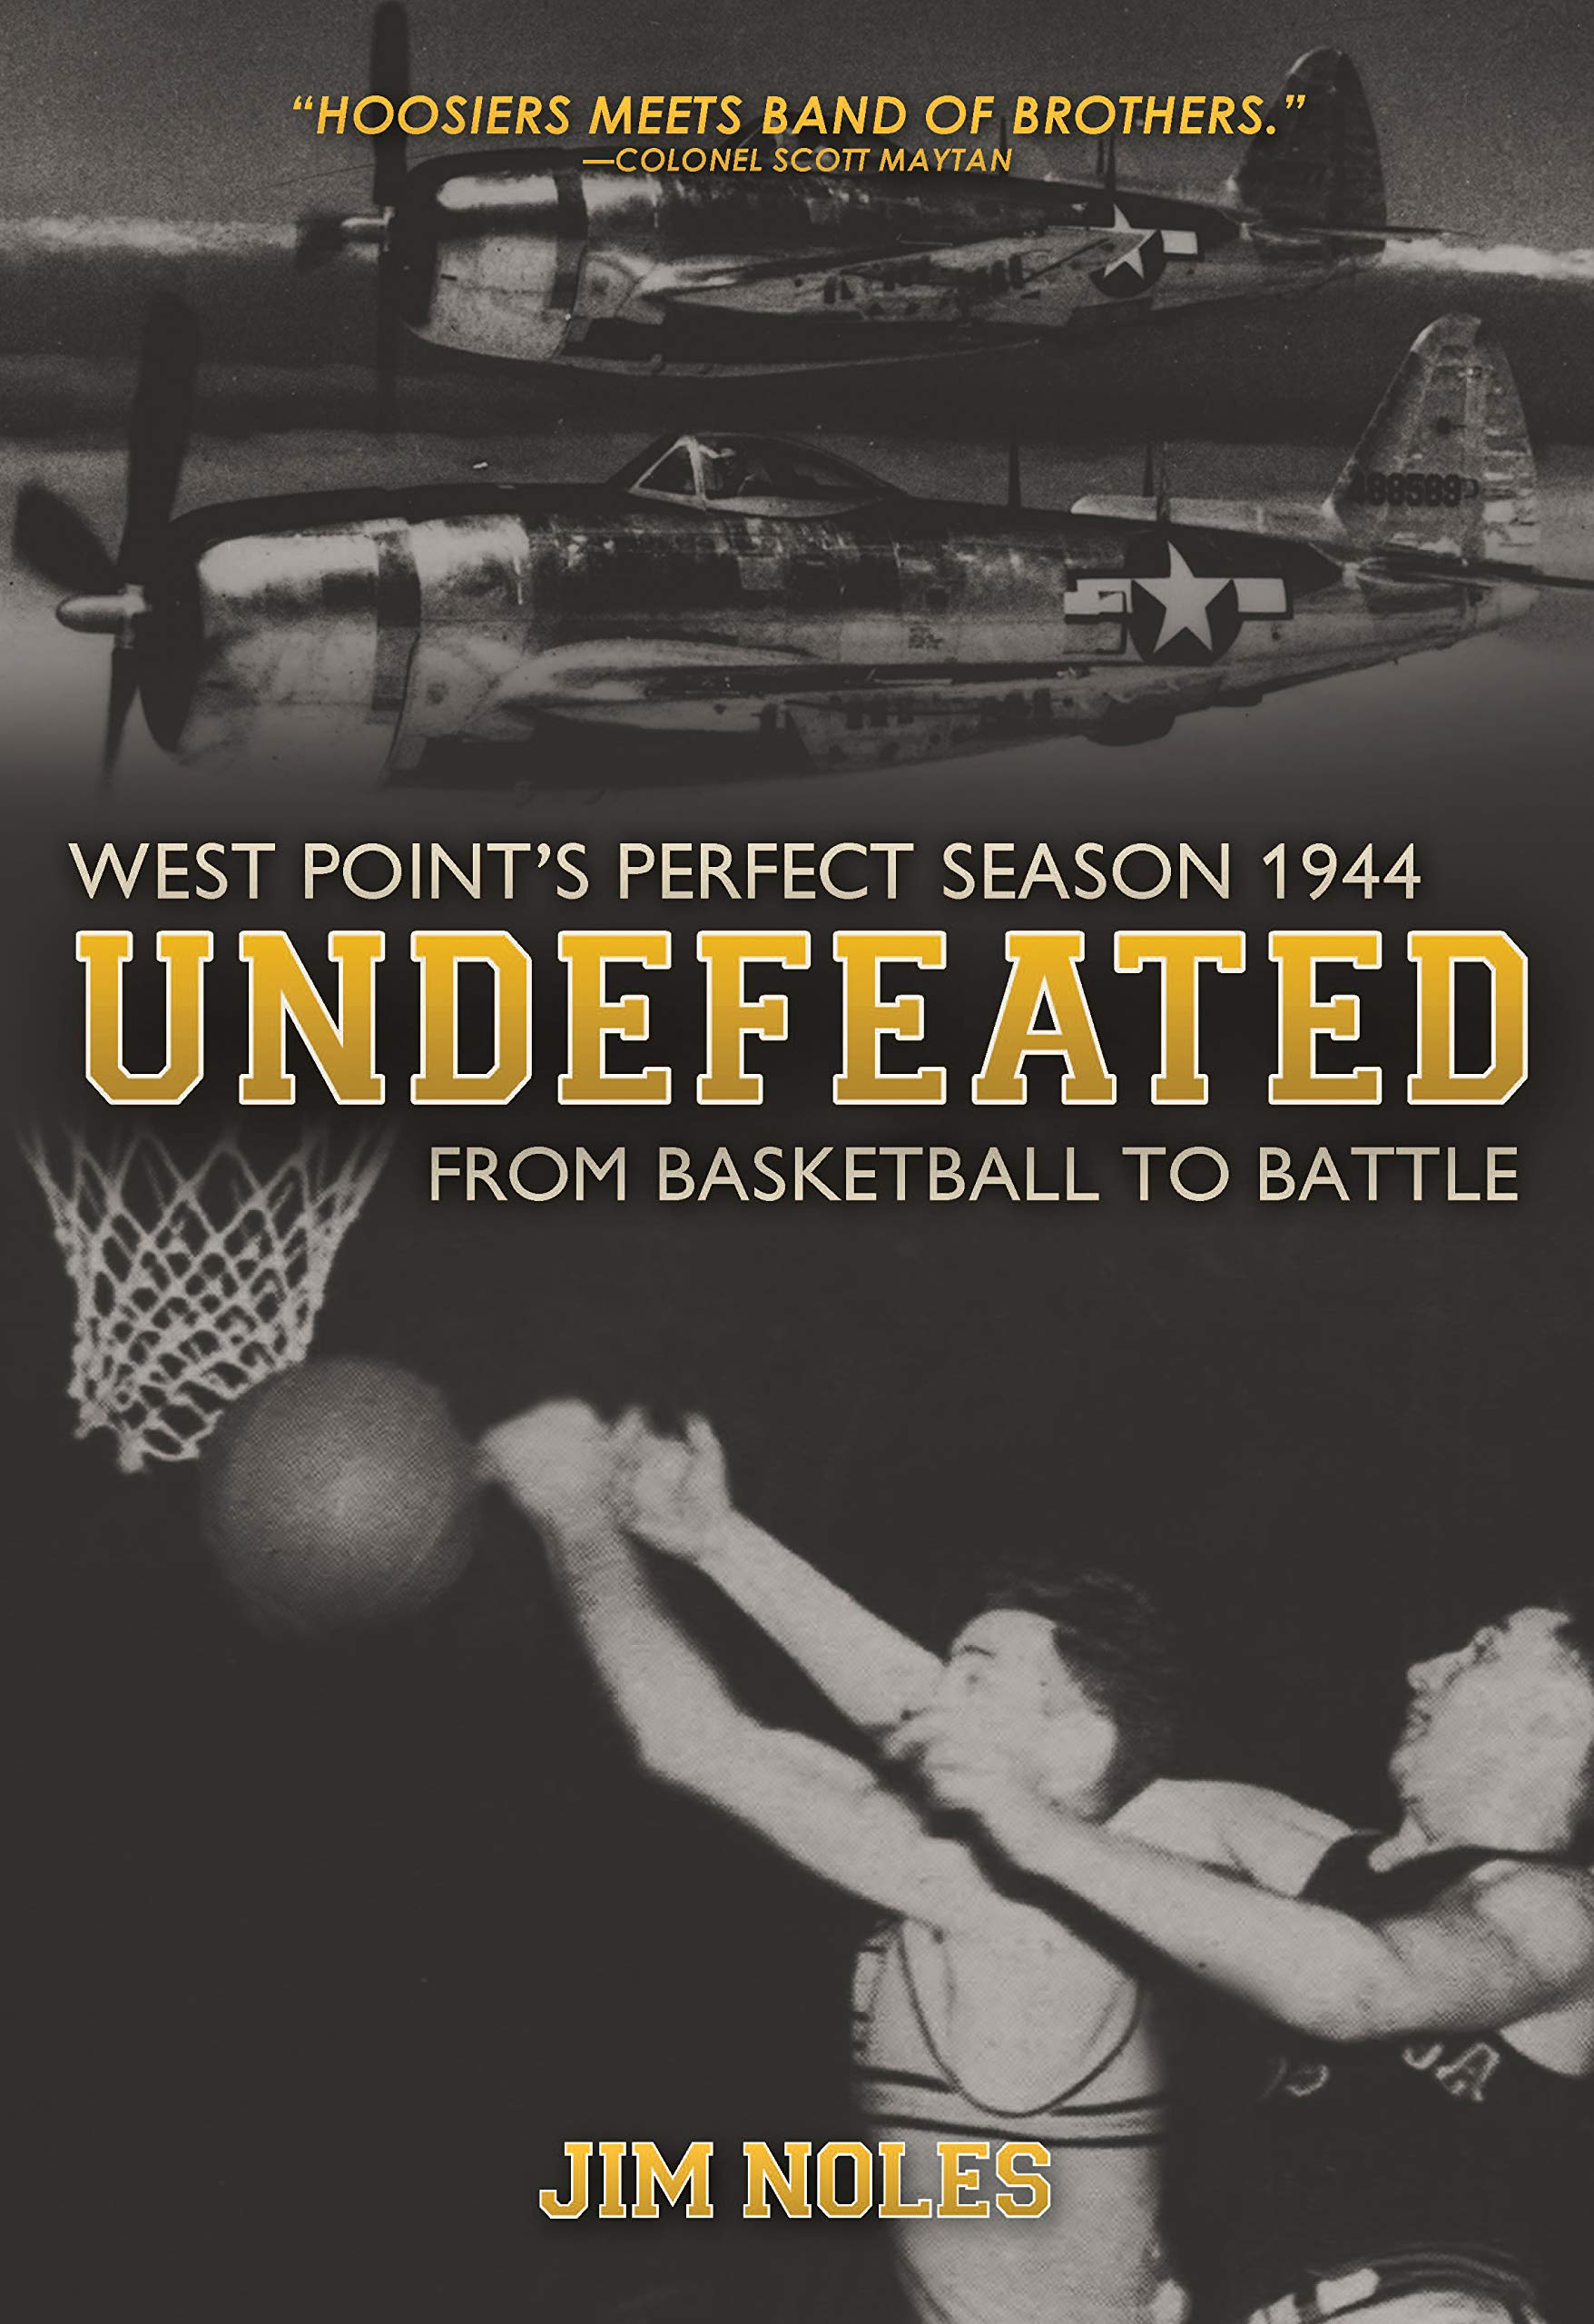 Undefeated: From Basketball to Battle: West Point's